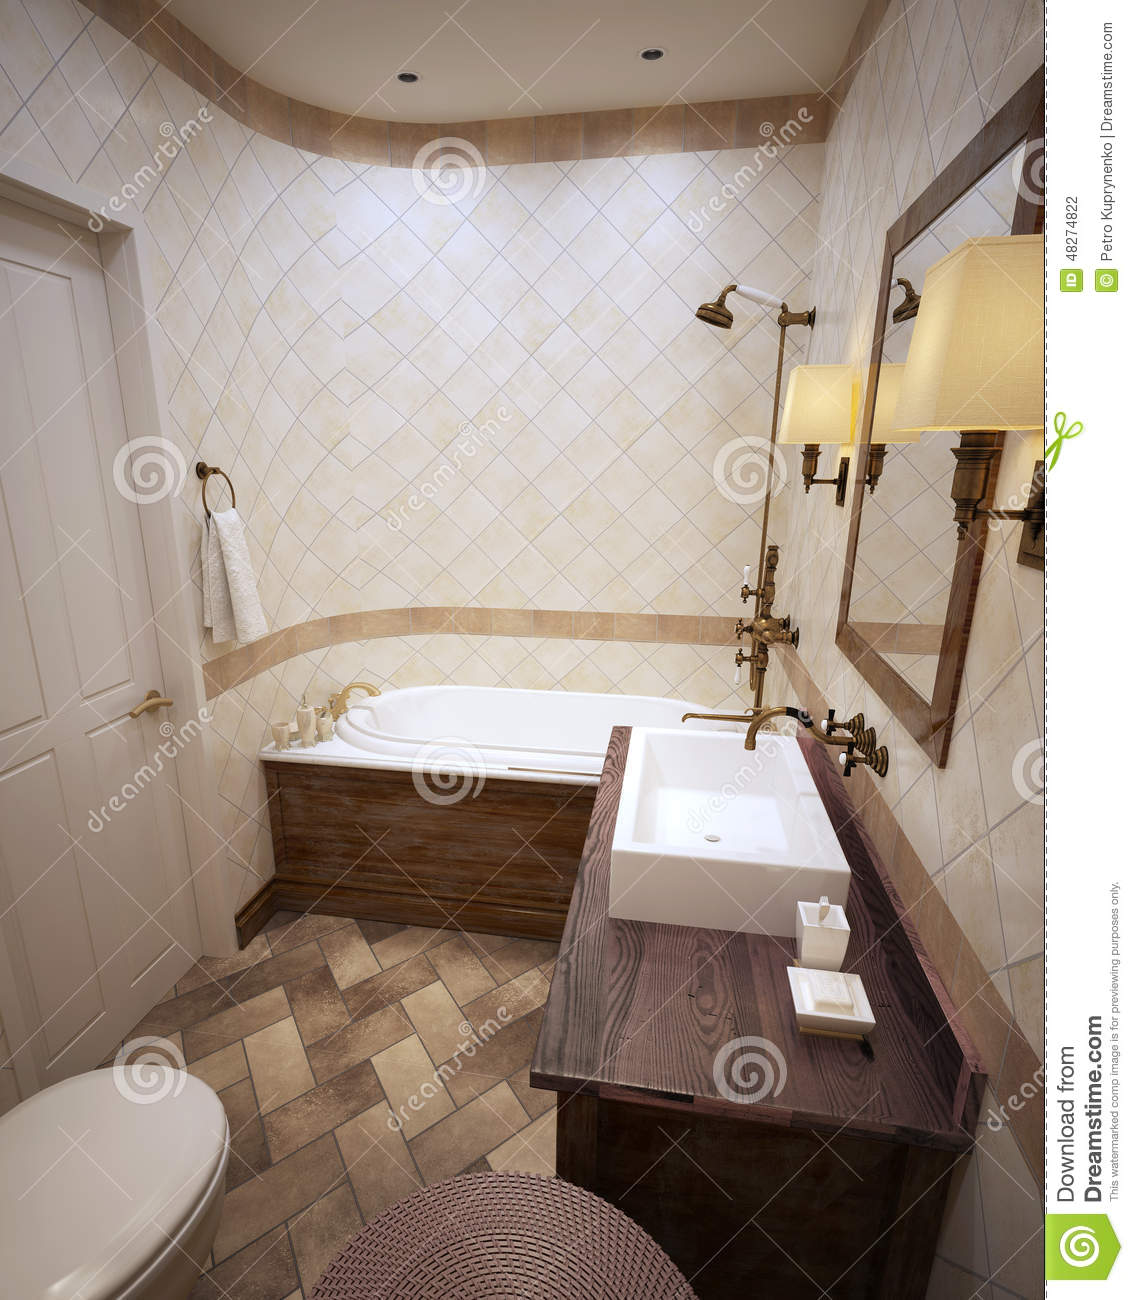 Bathroom in provence style stock illustration for Provence bathroom design